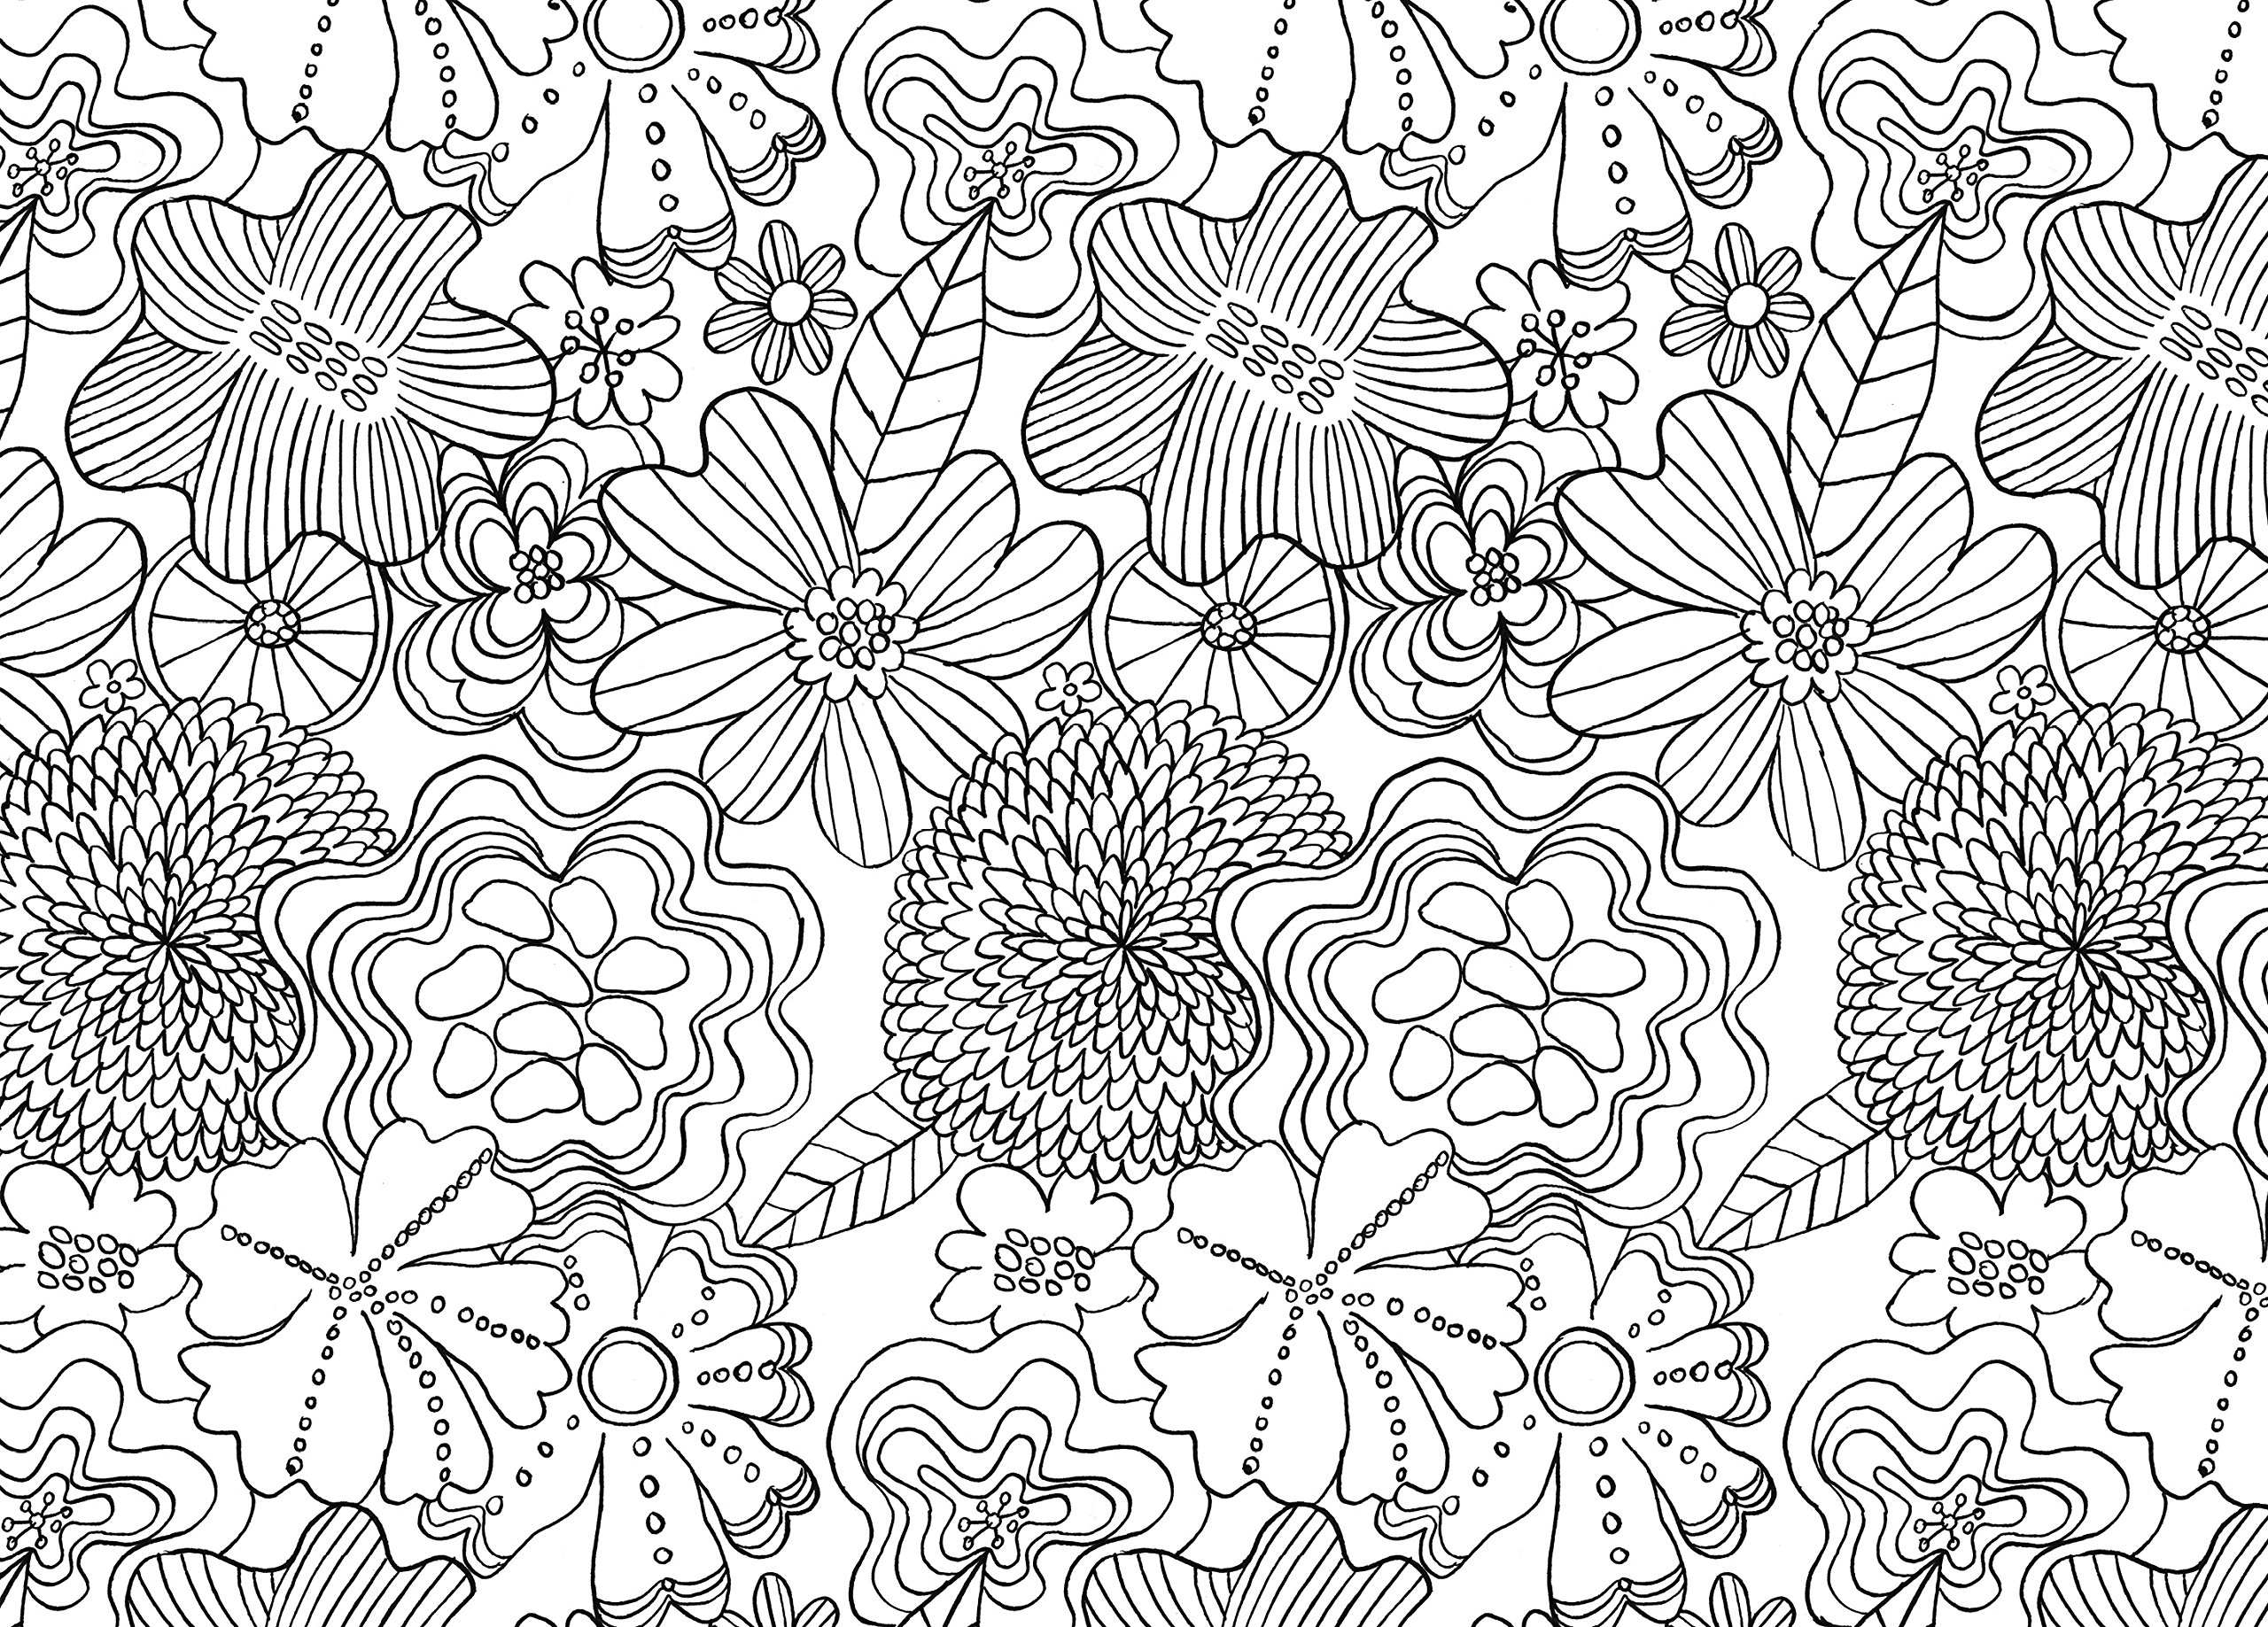 the mindfulness colouring book anti stress art therapy for busy